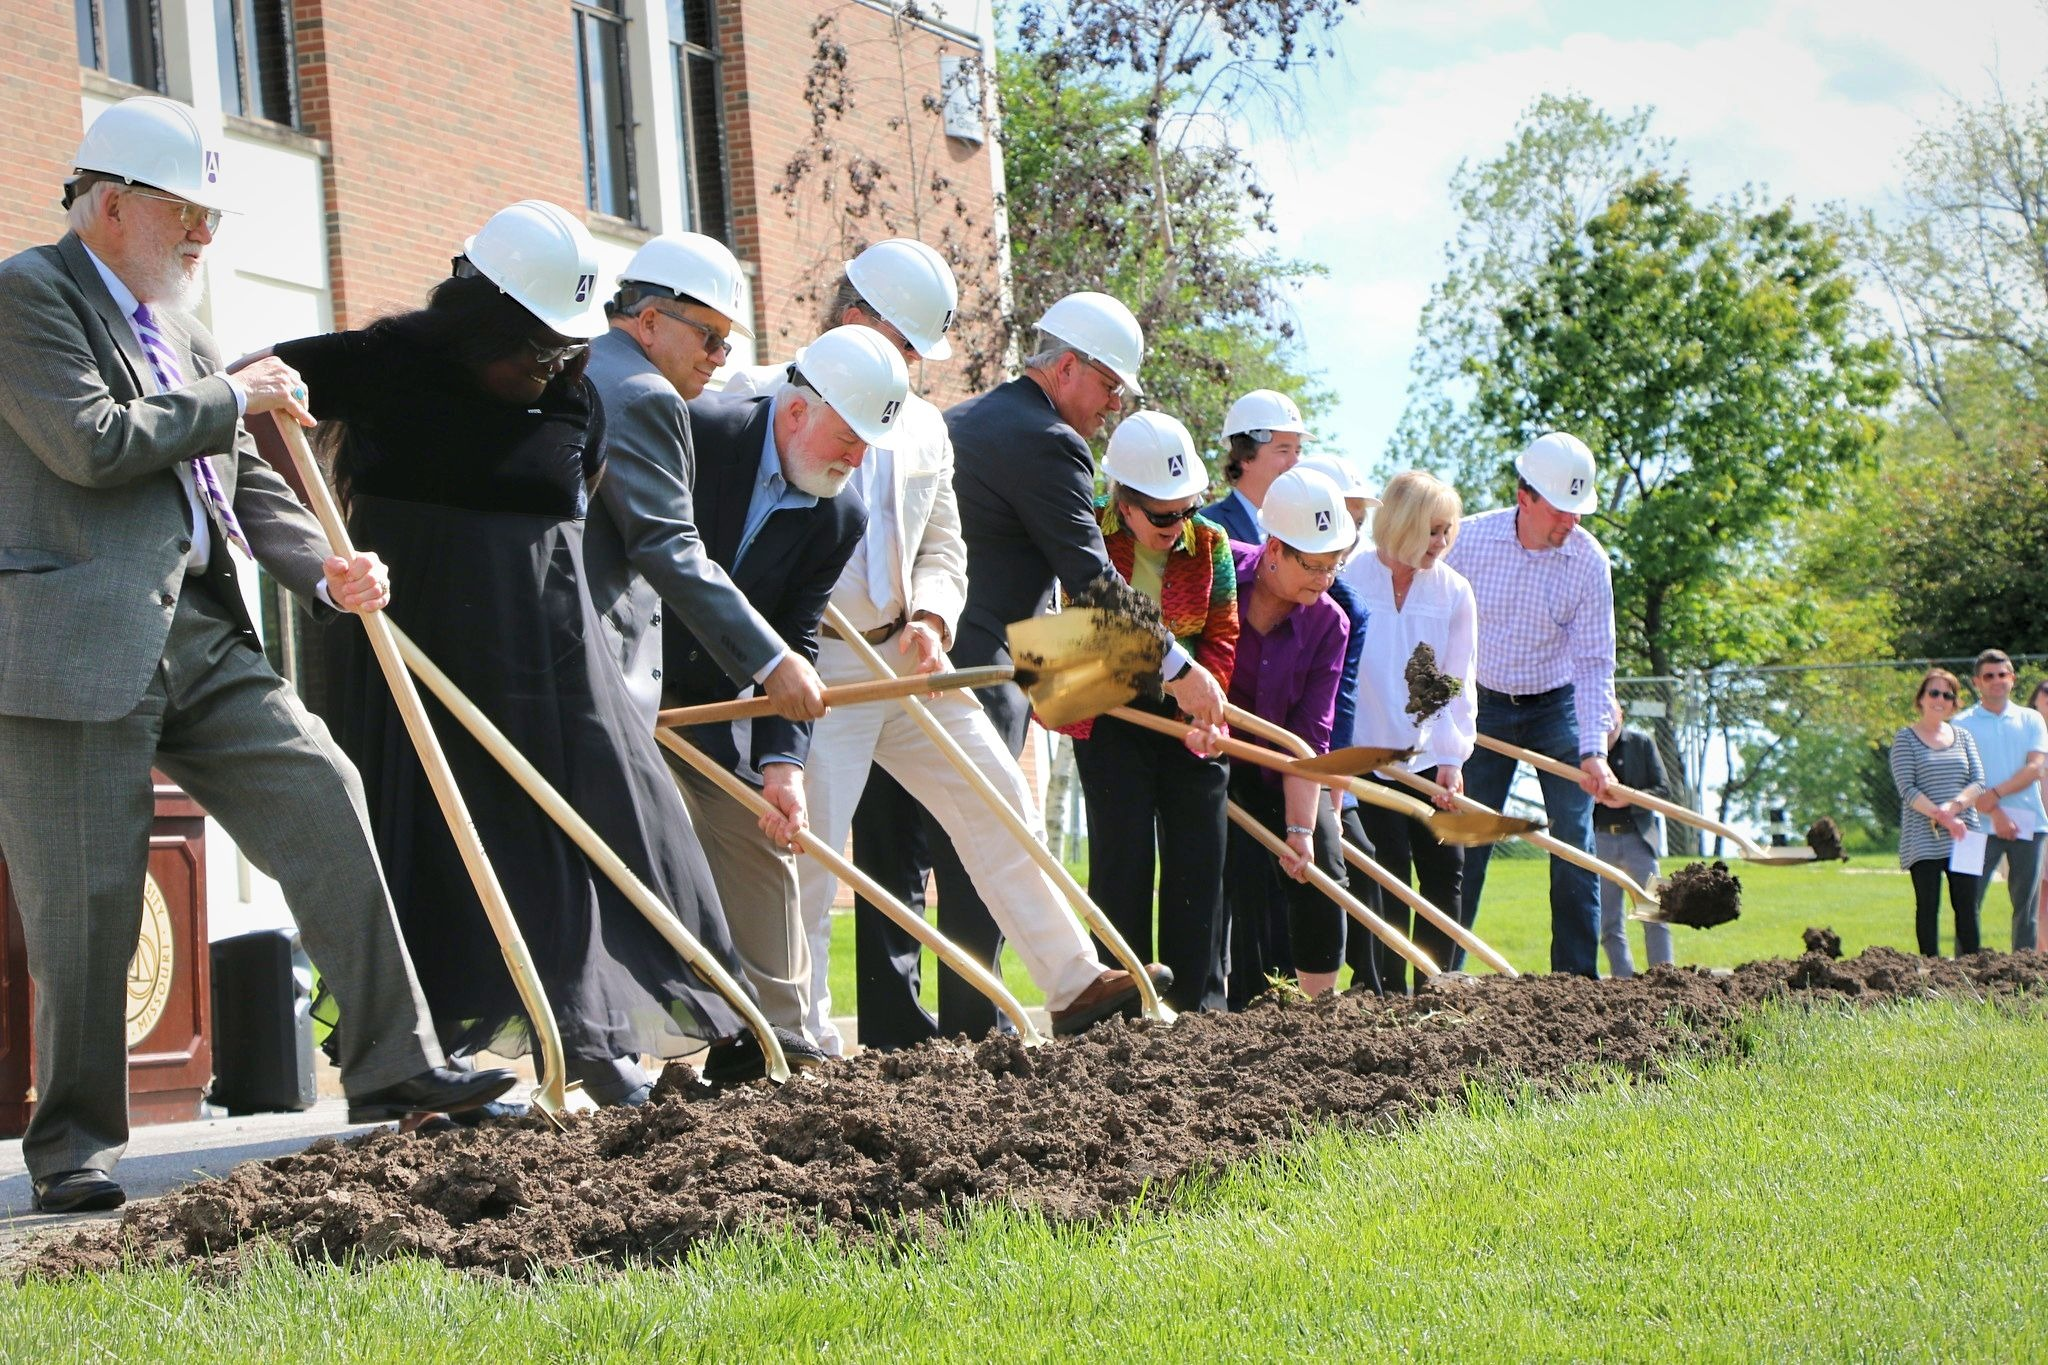 Ground breaking ceremony for the Goppert Performing Arts Center